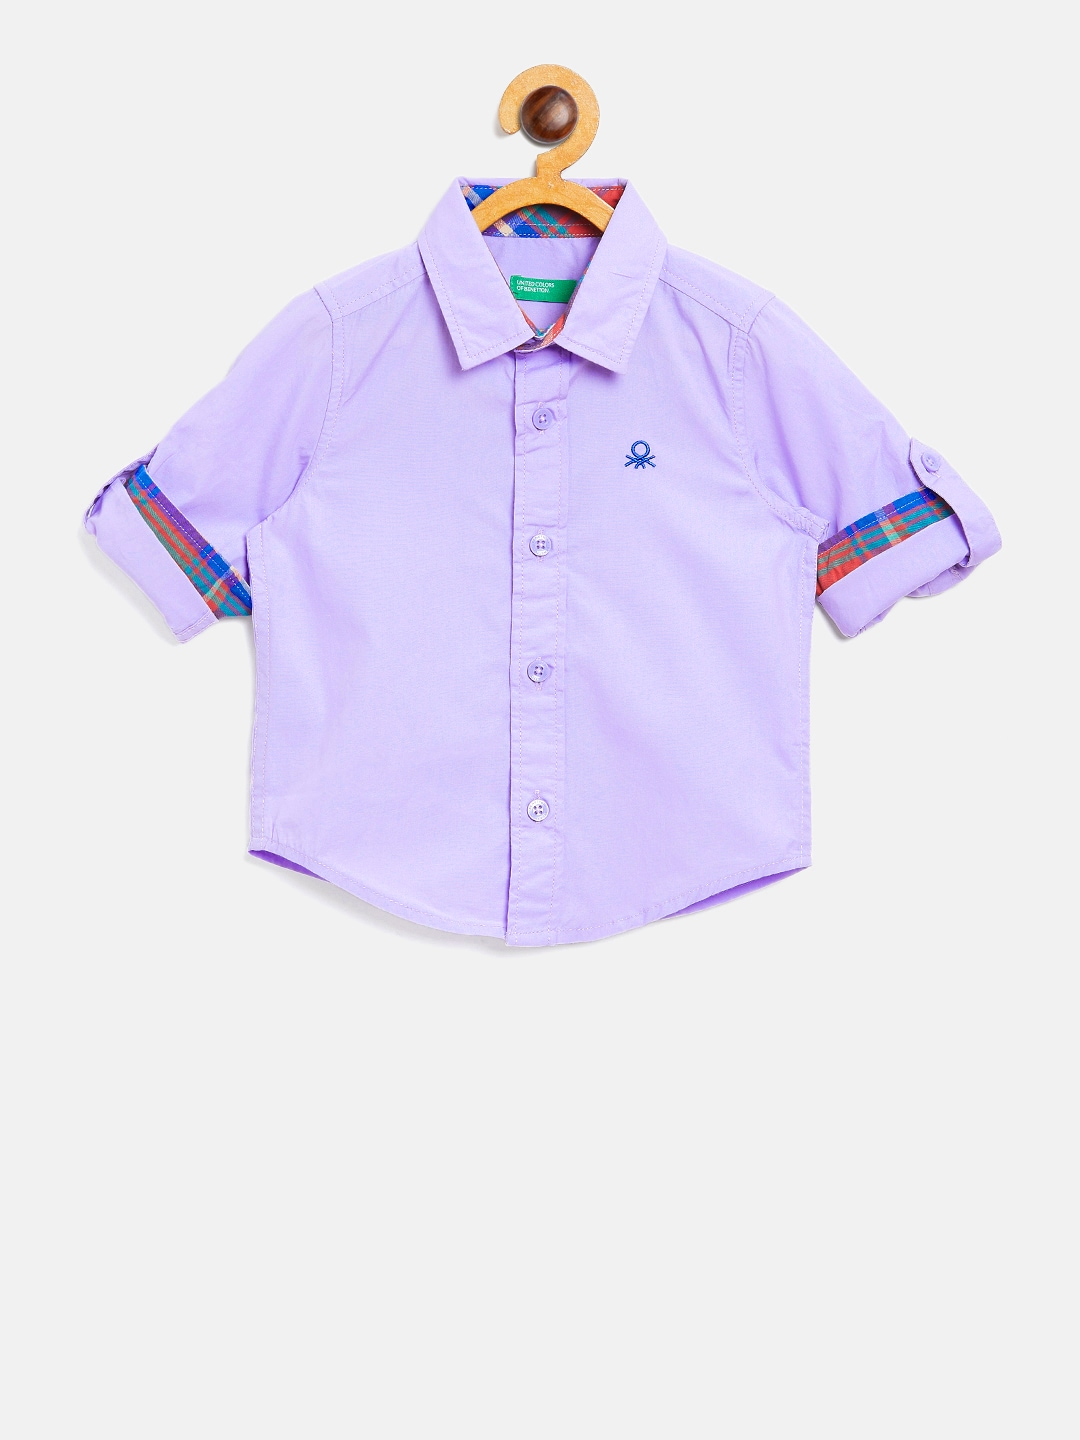 1611540730d4 United Colors Of Benetton Boys Topwear - Buy United Colors Of ...